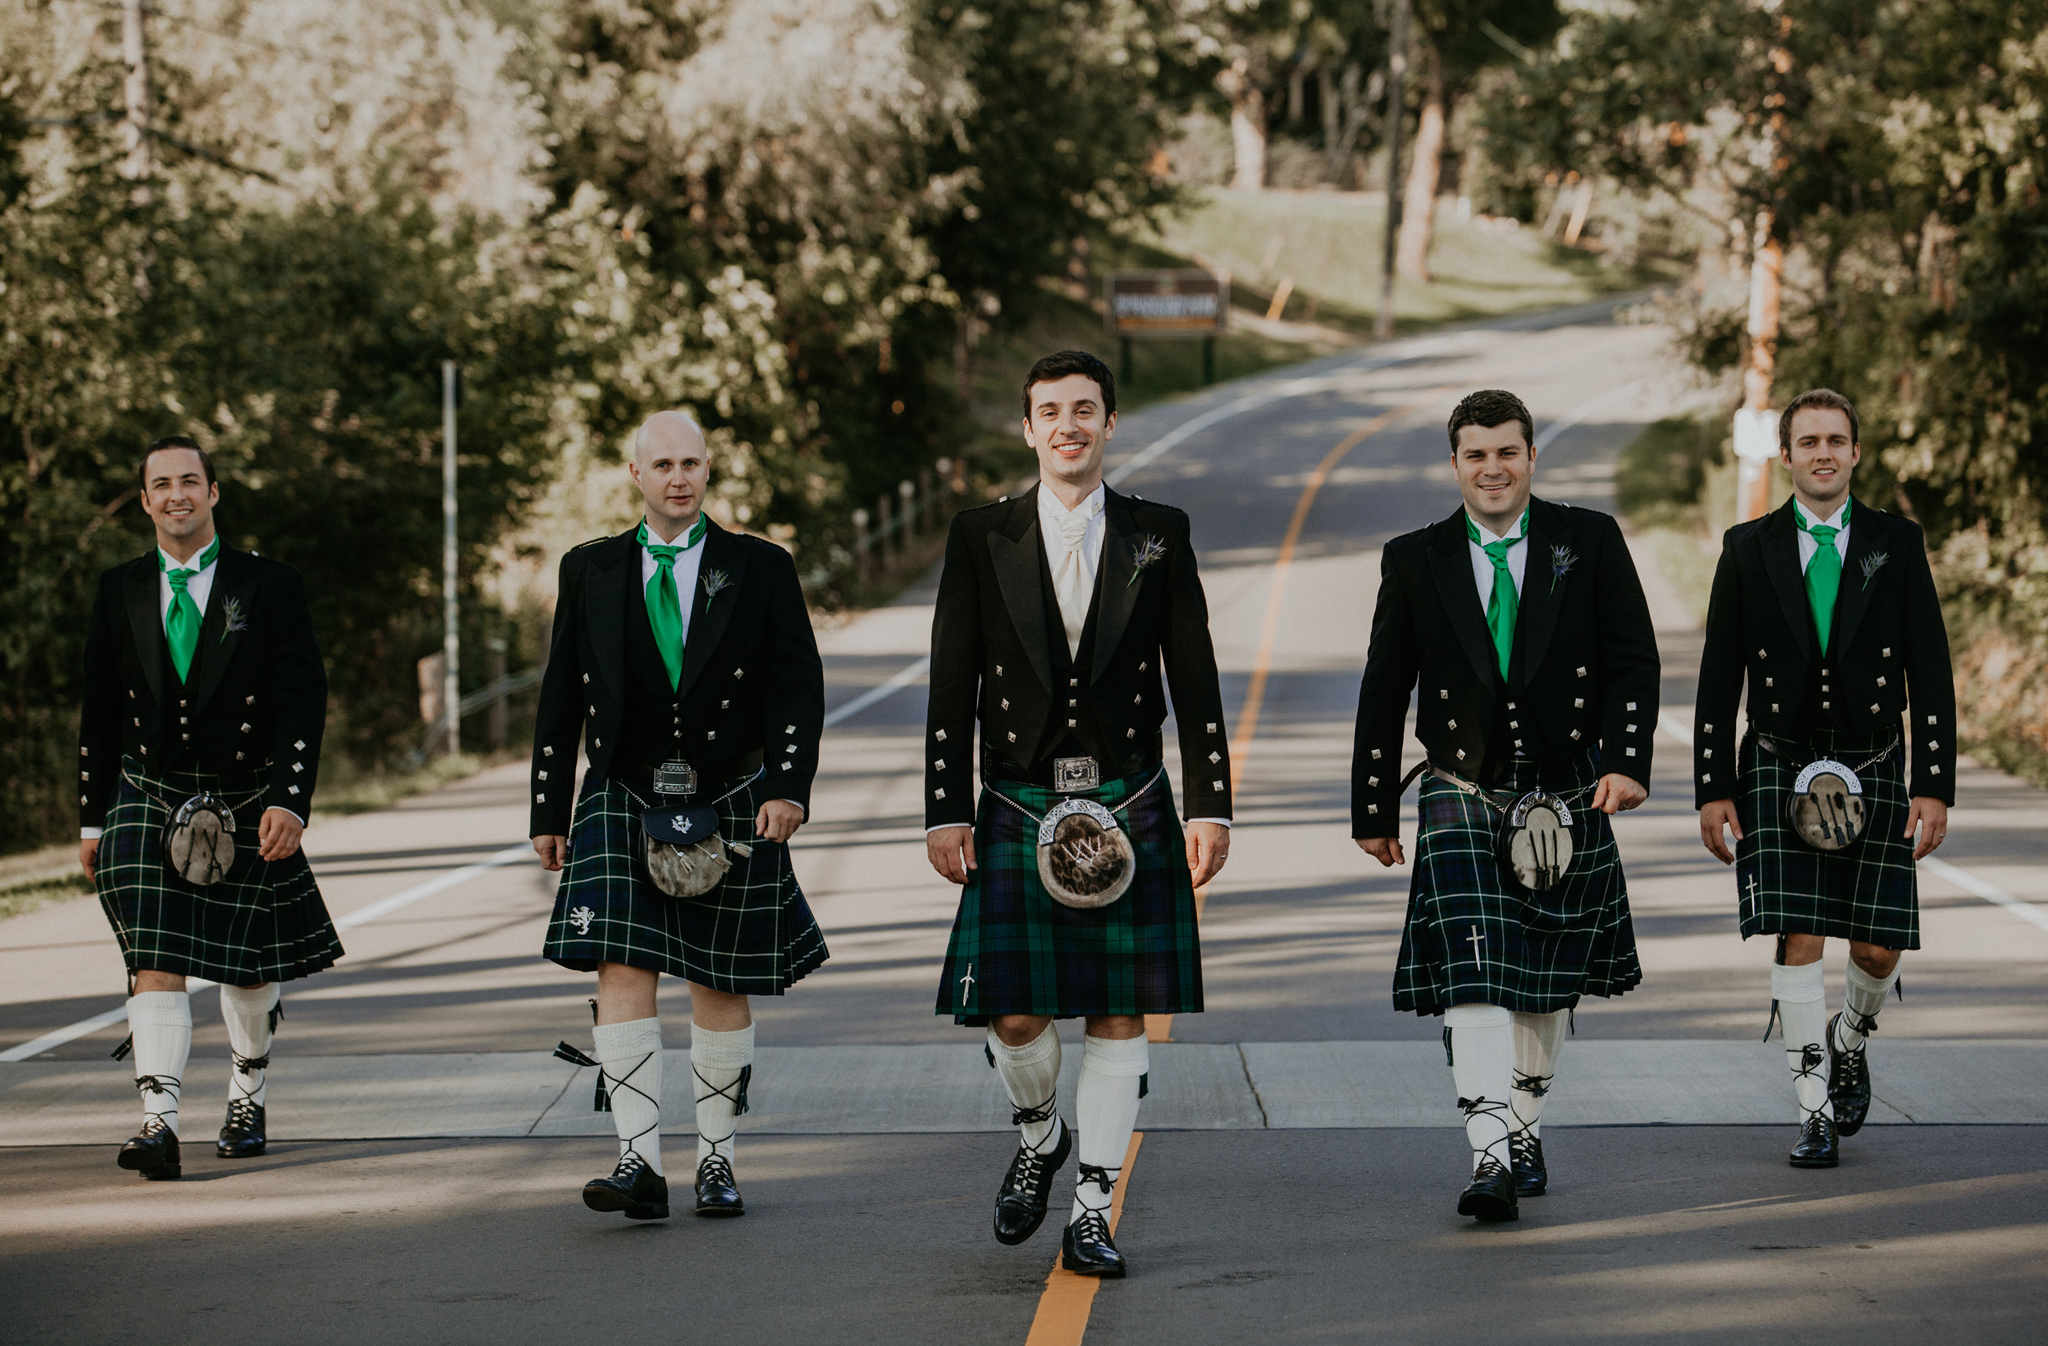 Groom and groomsmen in kilts walking down street